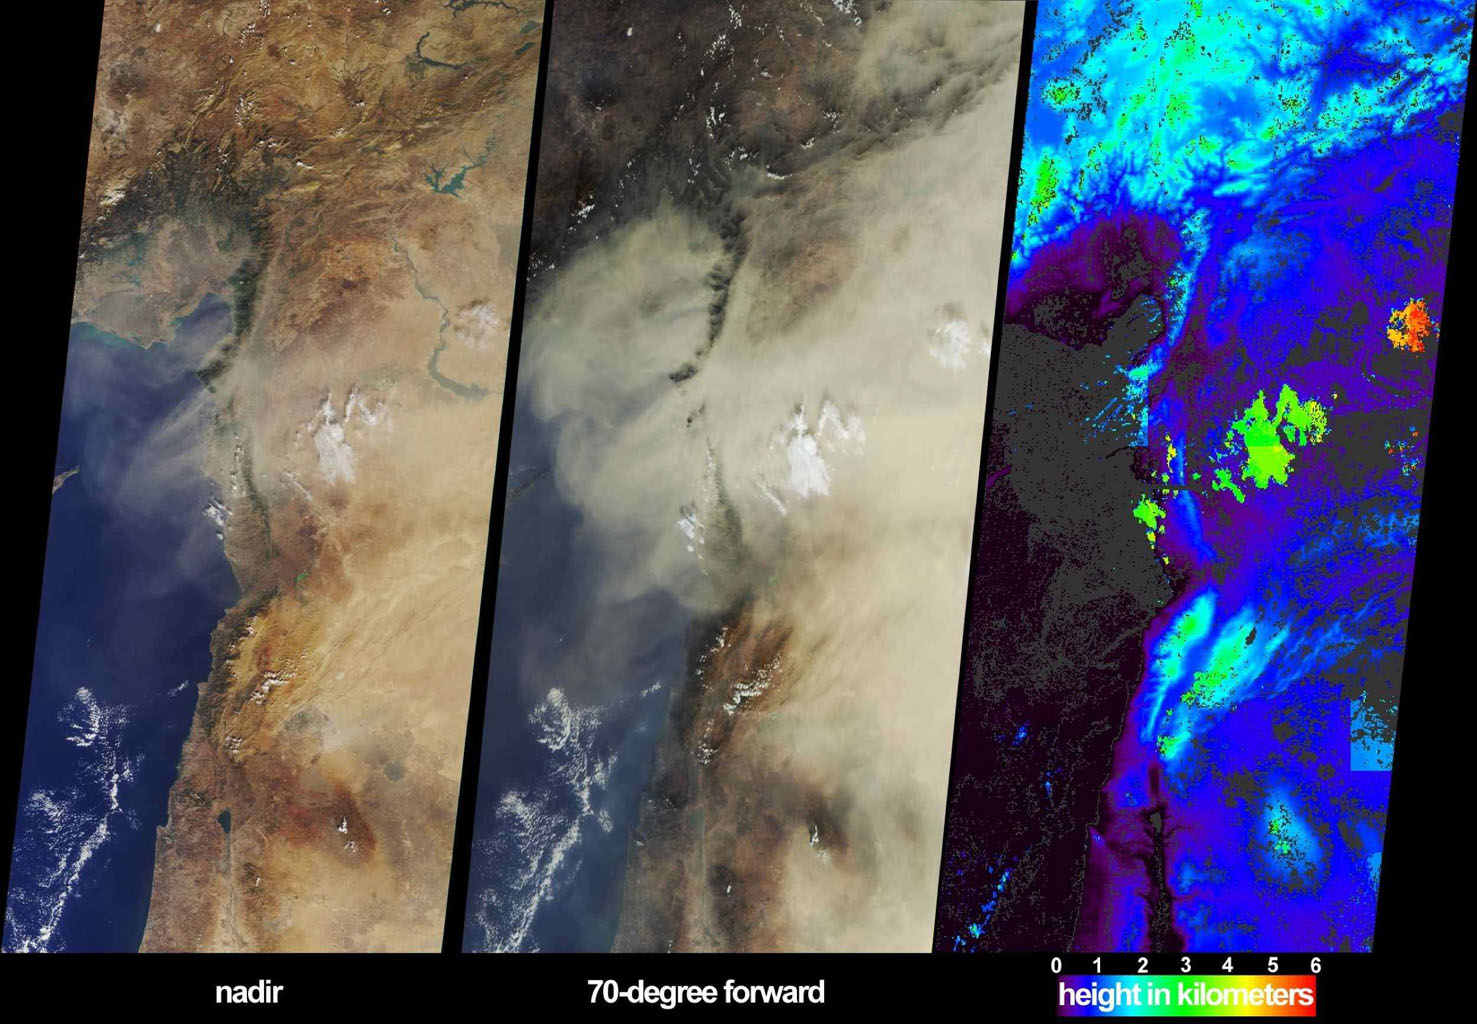 These images from NASA's Terra satellite, captured on October 18, 2002, display a large dust plume extended across countries bordering the eastern Mediterranean Sea.